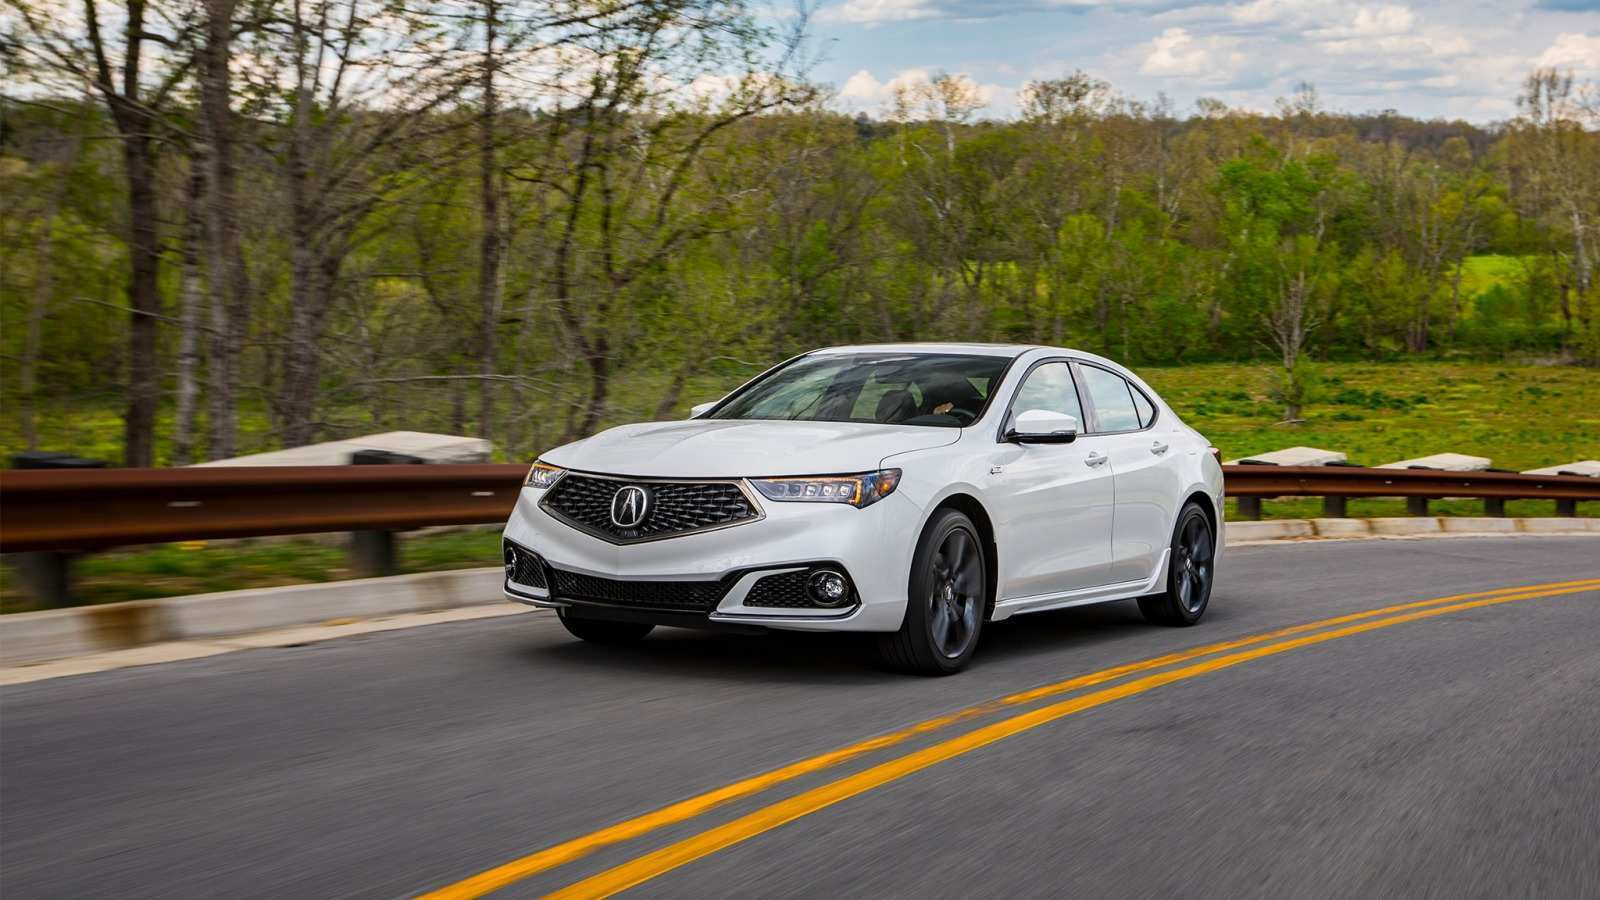 24 New Acura Tlx 2019 Review Interior Pictures by Acura Tlx 2019 Review Interior